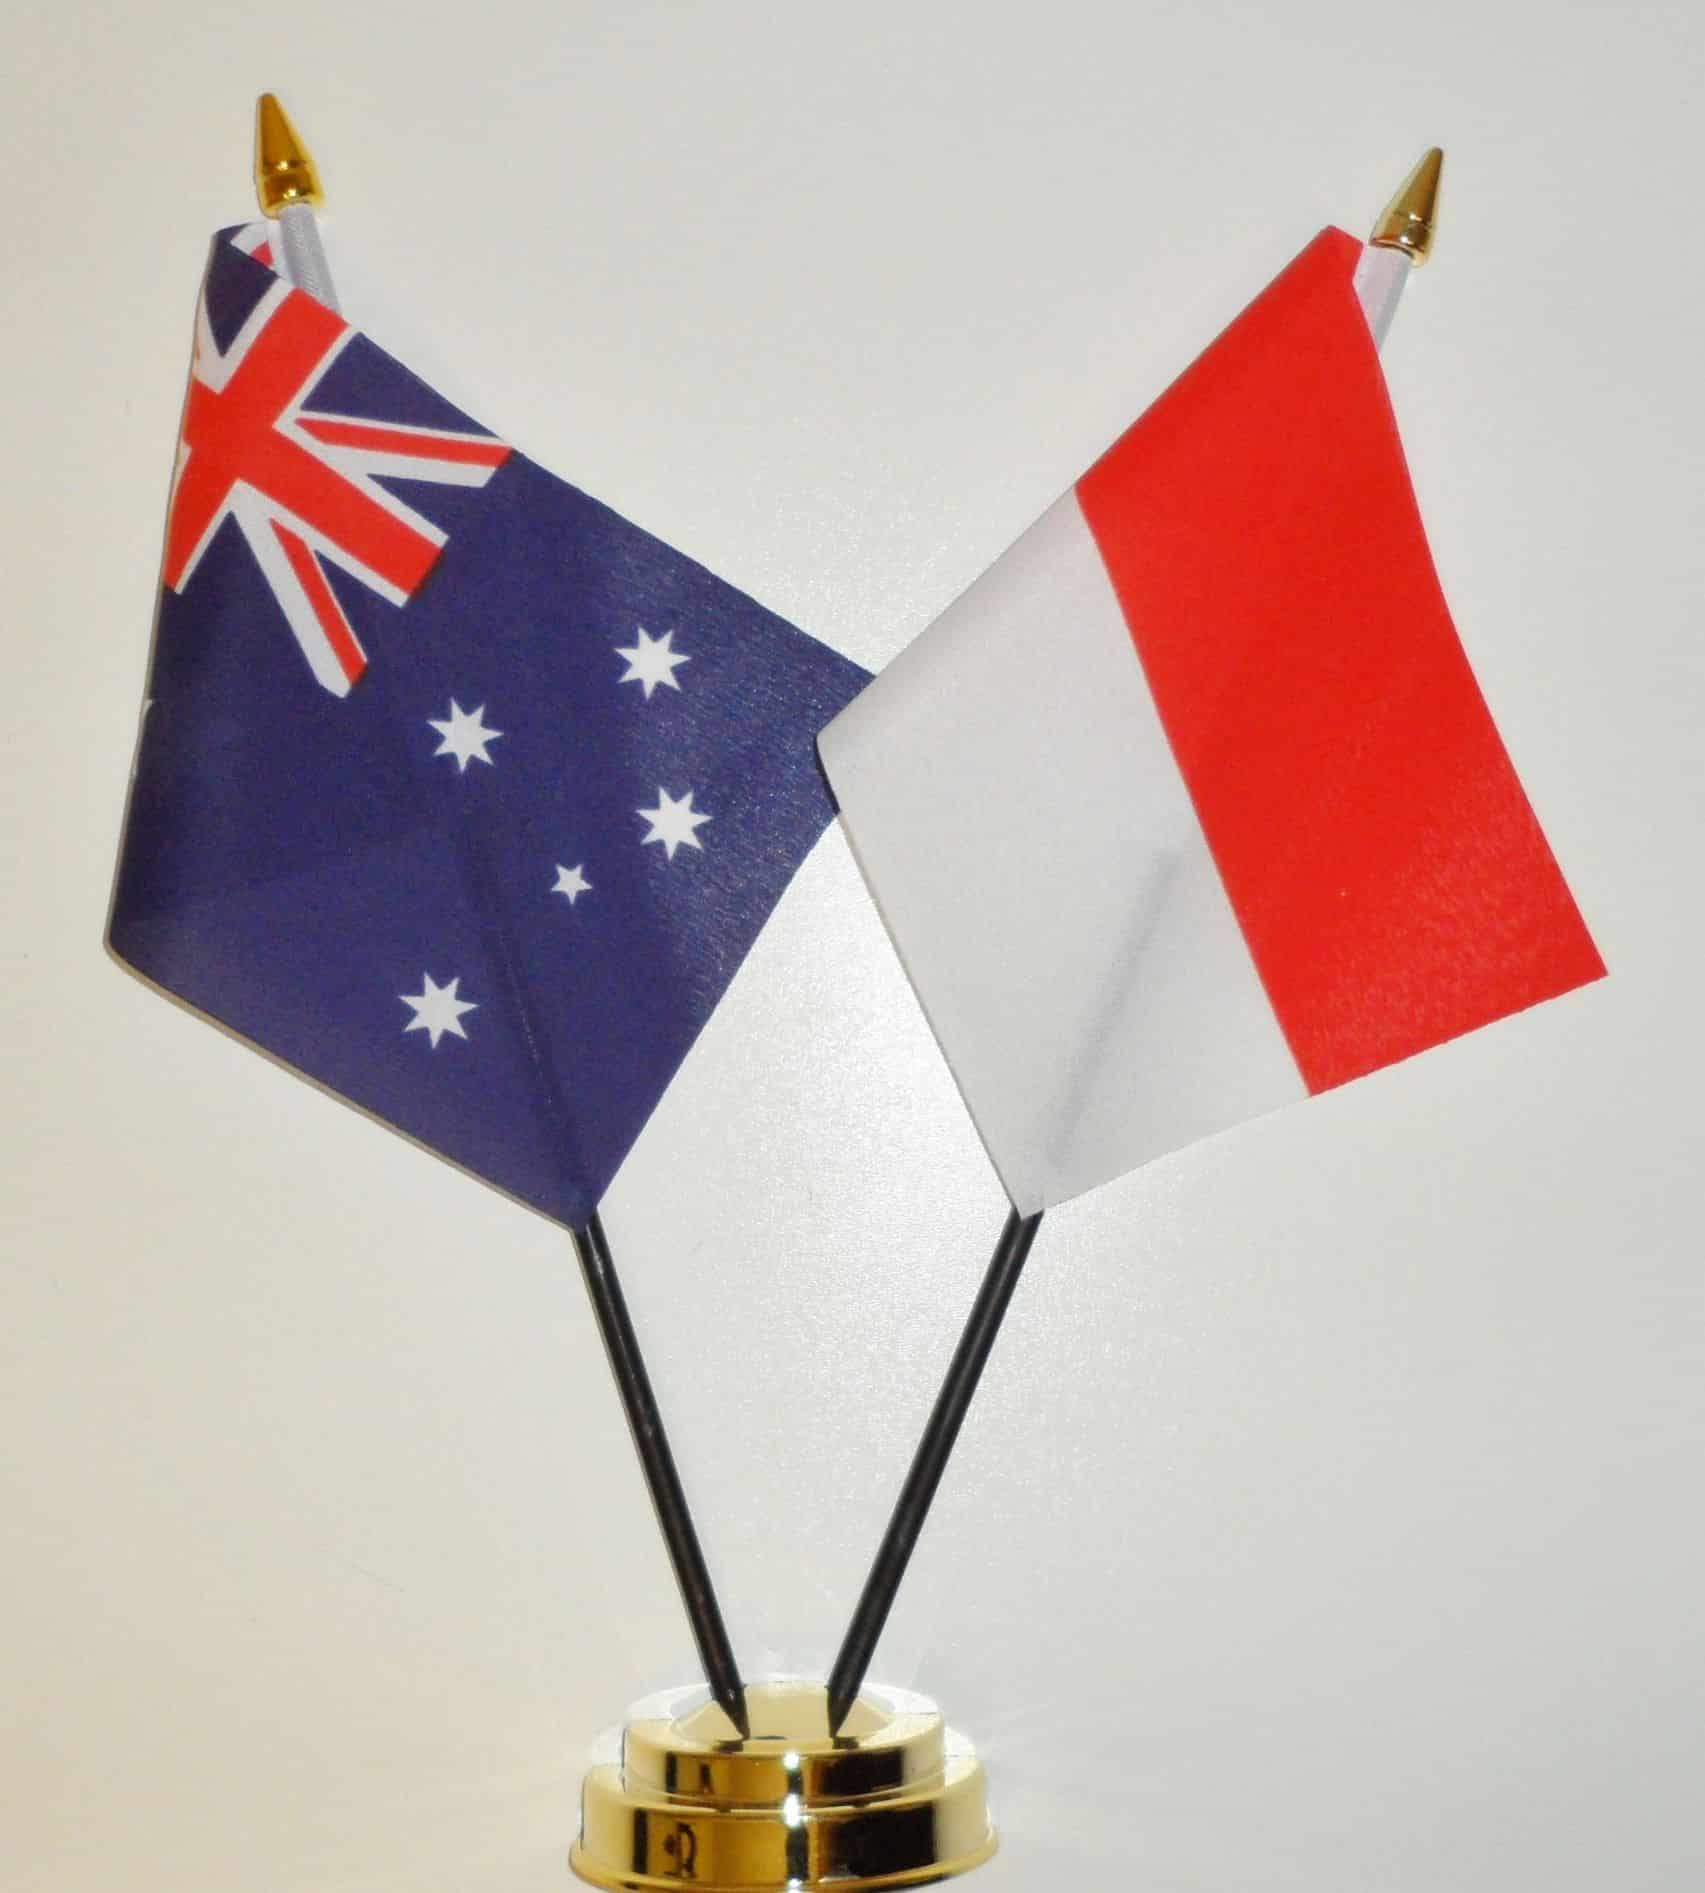 Australia and Indonesia Sign Wide-Ranging Partnership to Propel Trade